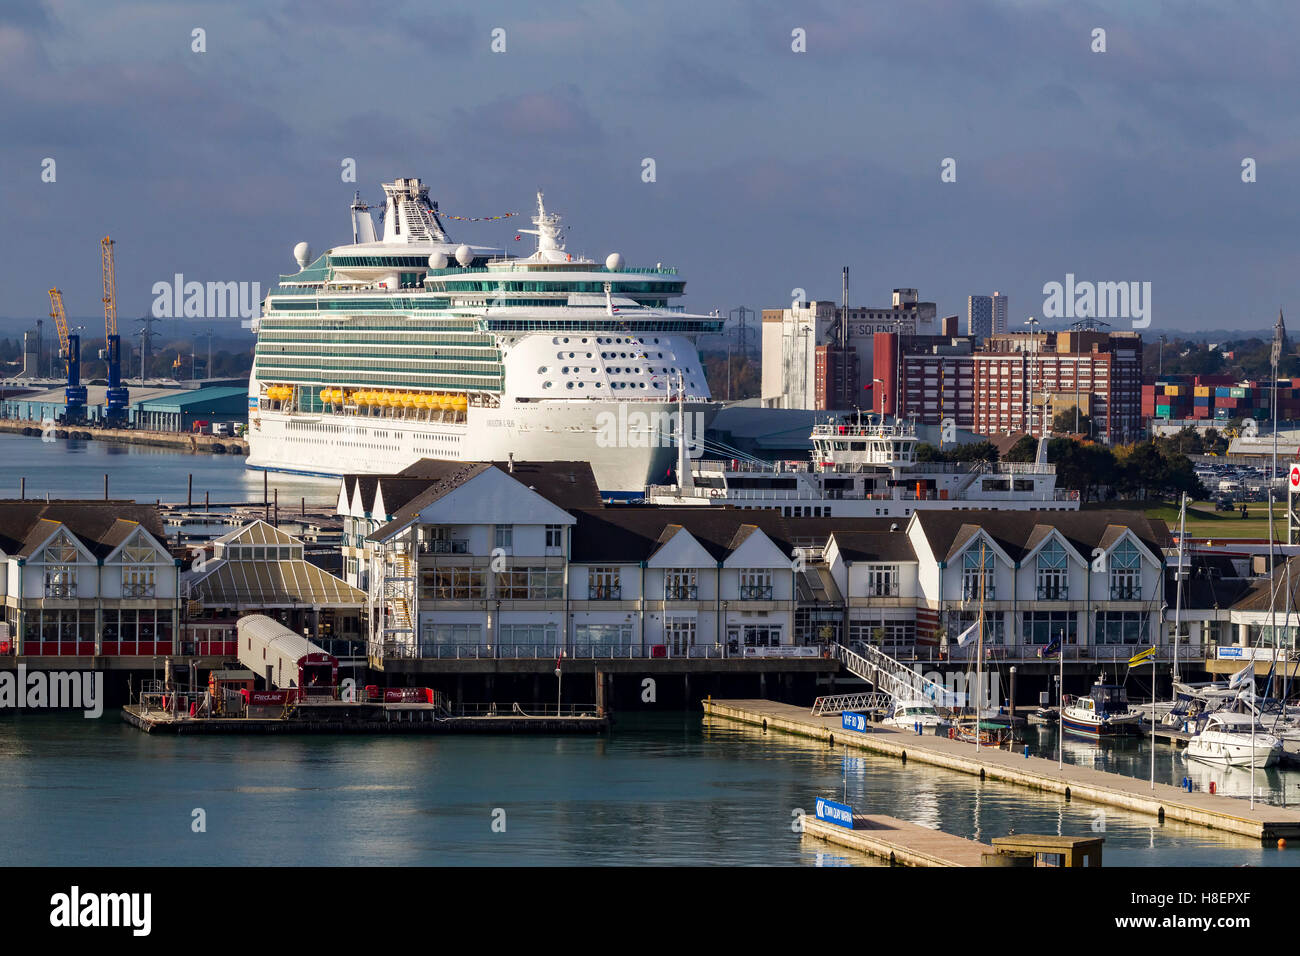 Navigator of the Seas moored in Southampton, u.k. - Stock Image